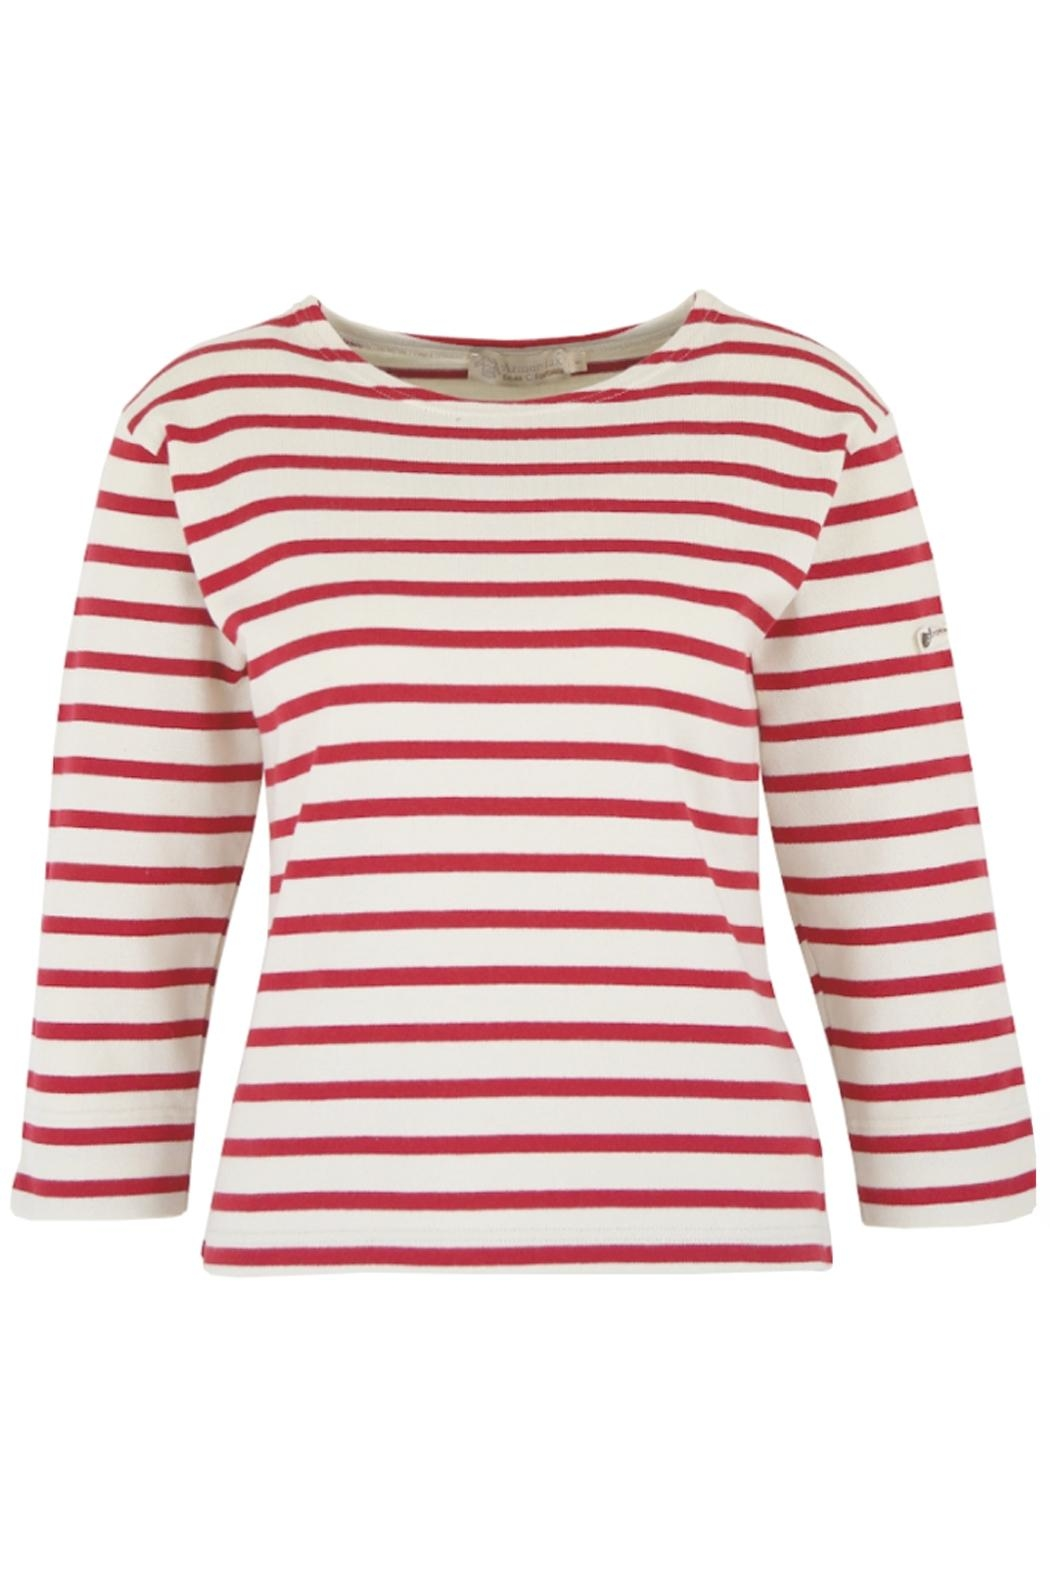 Armor Lux Red Breton Shirt - Front Cropped Image